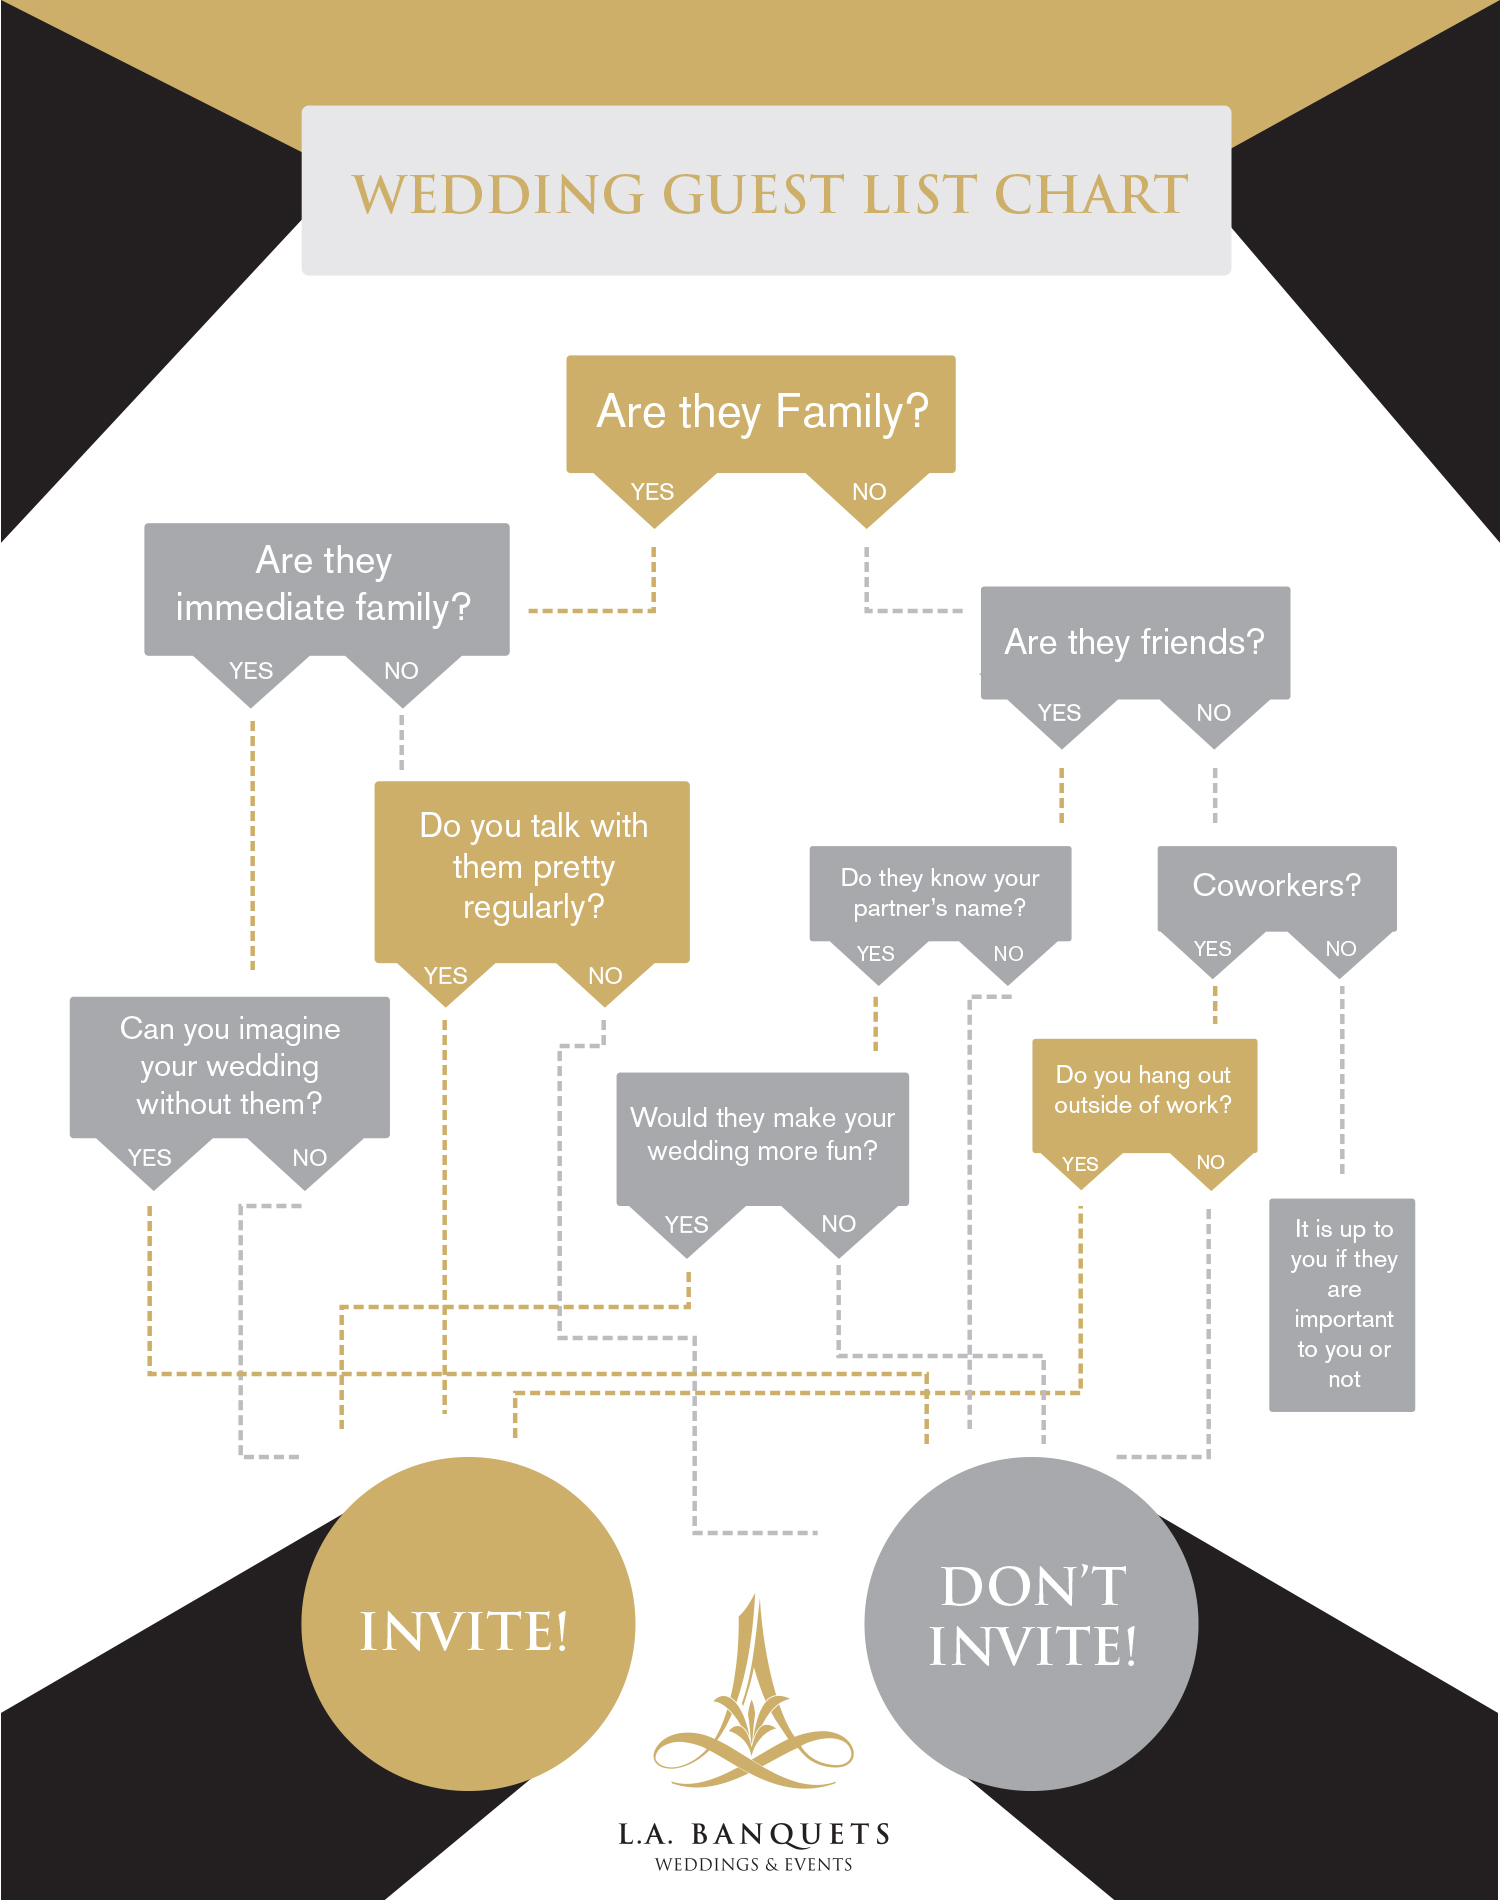 guest list flow chart labanquetscom - Who To Invite To Wedding